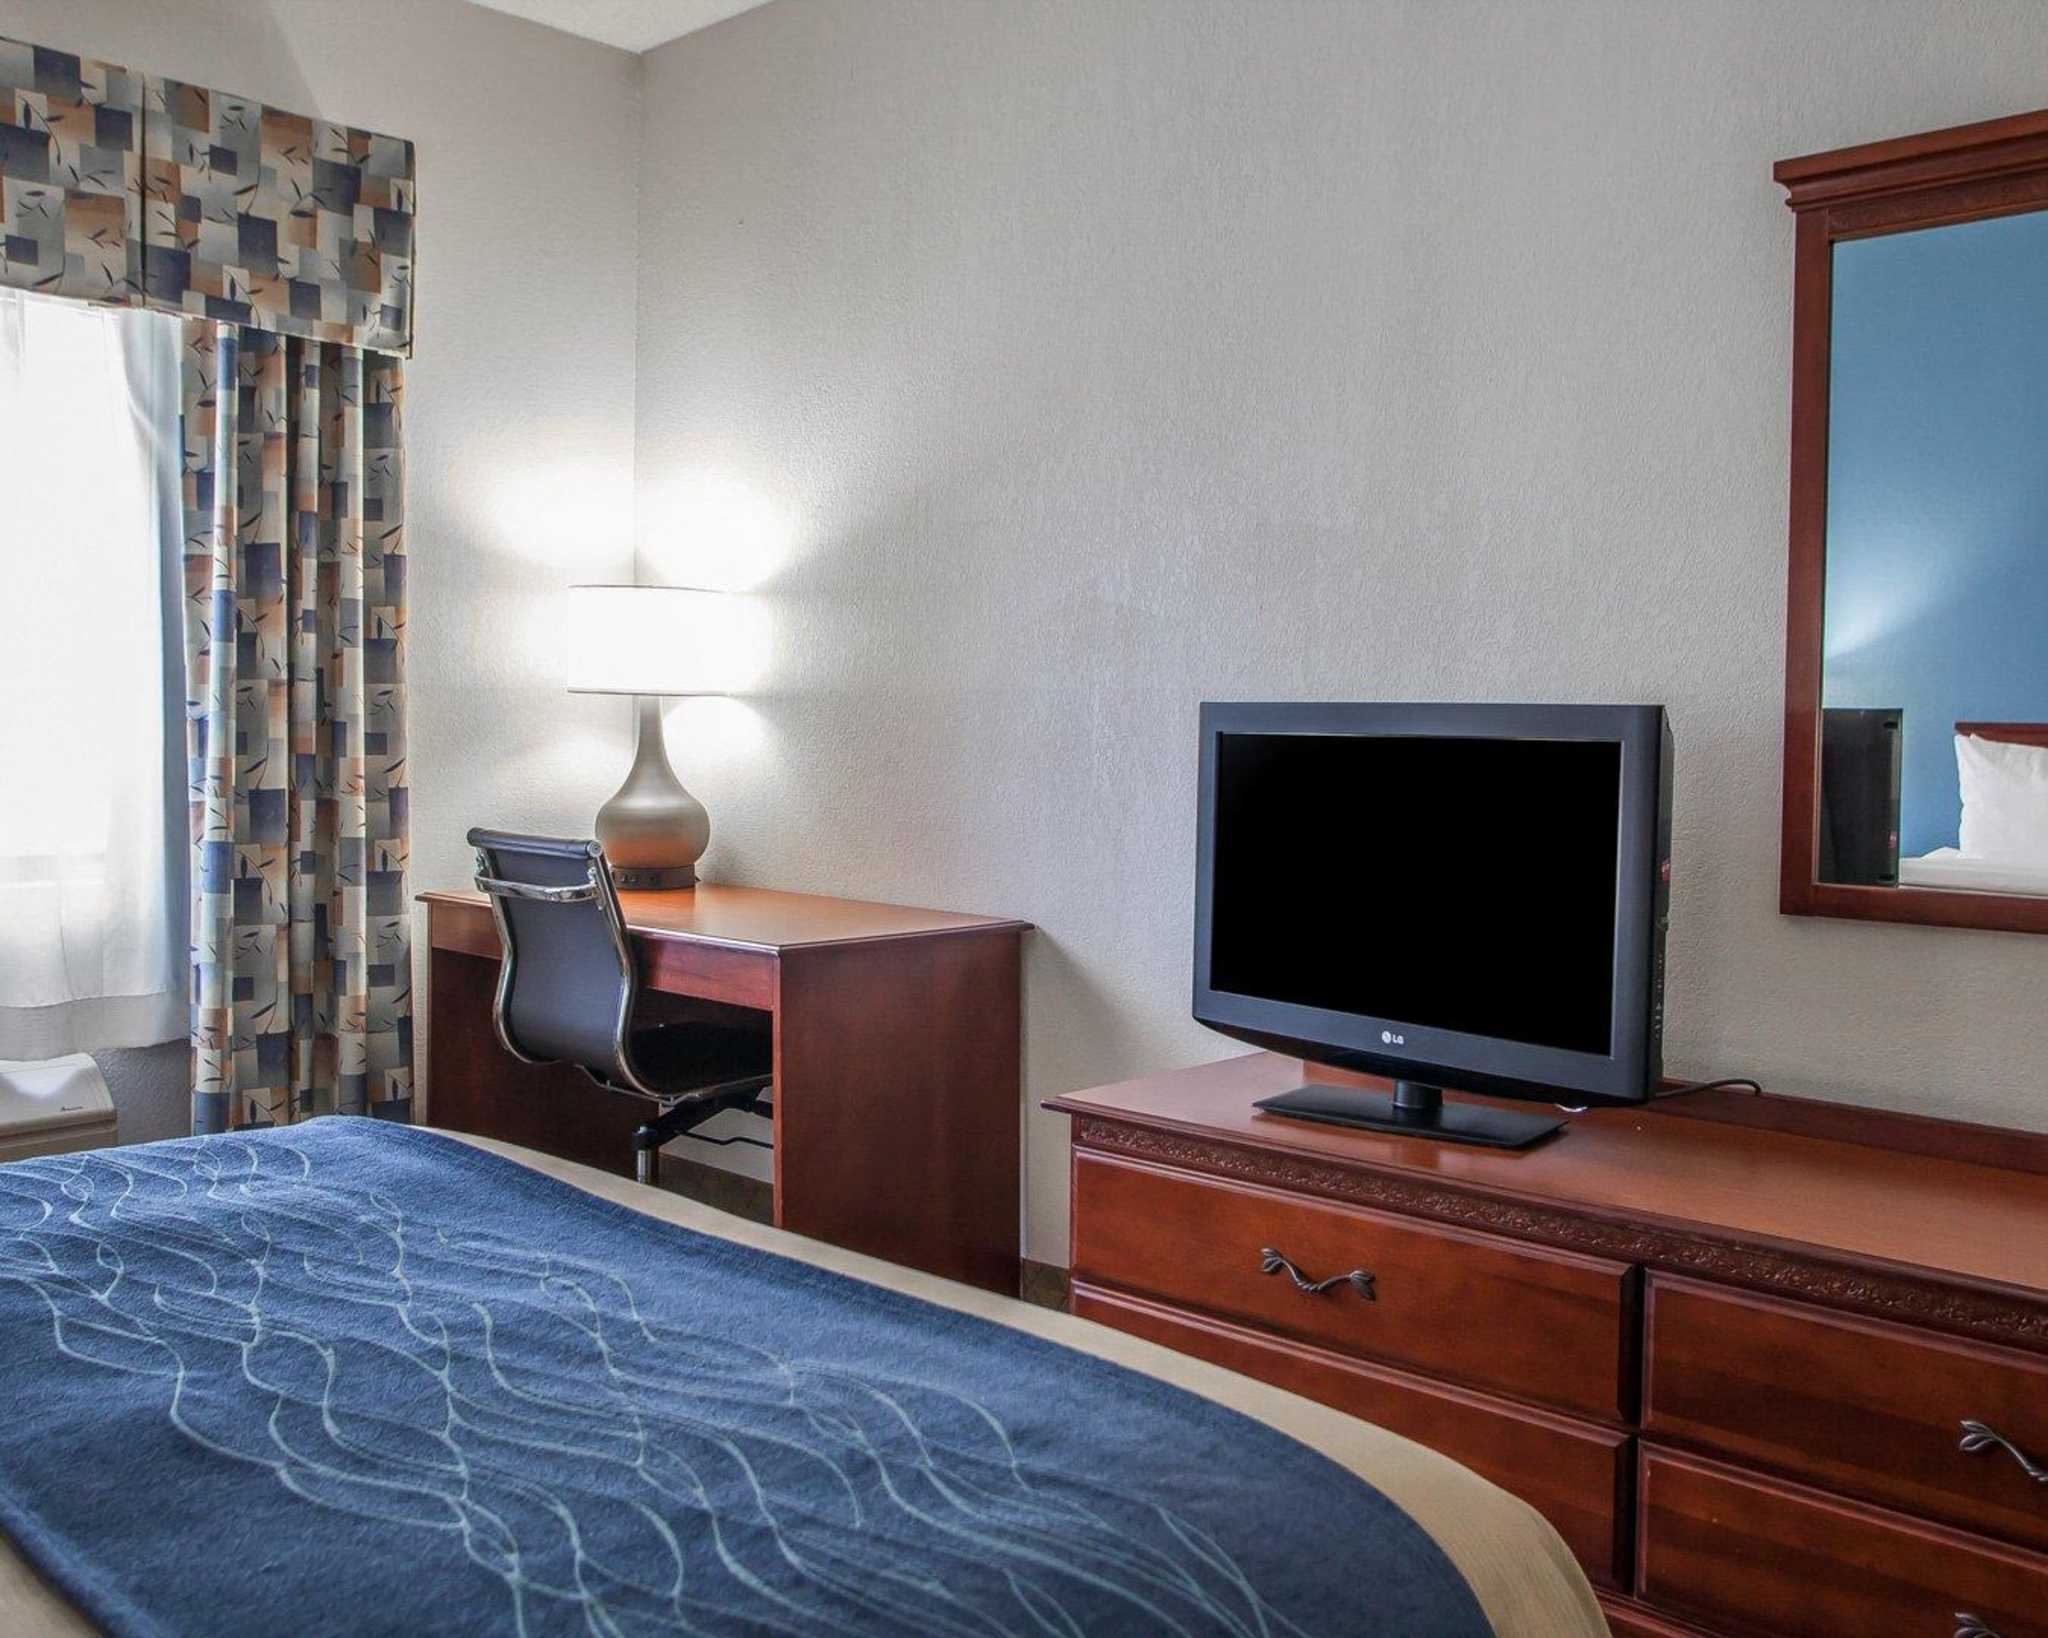 Comfort Inn & Suites Lees Summit -Kansas City image 6